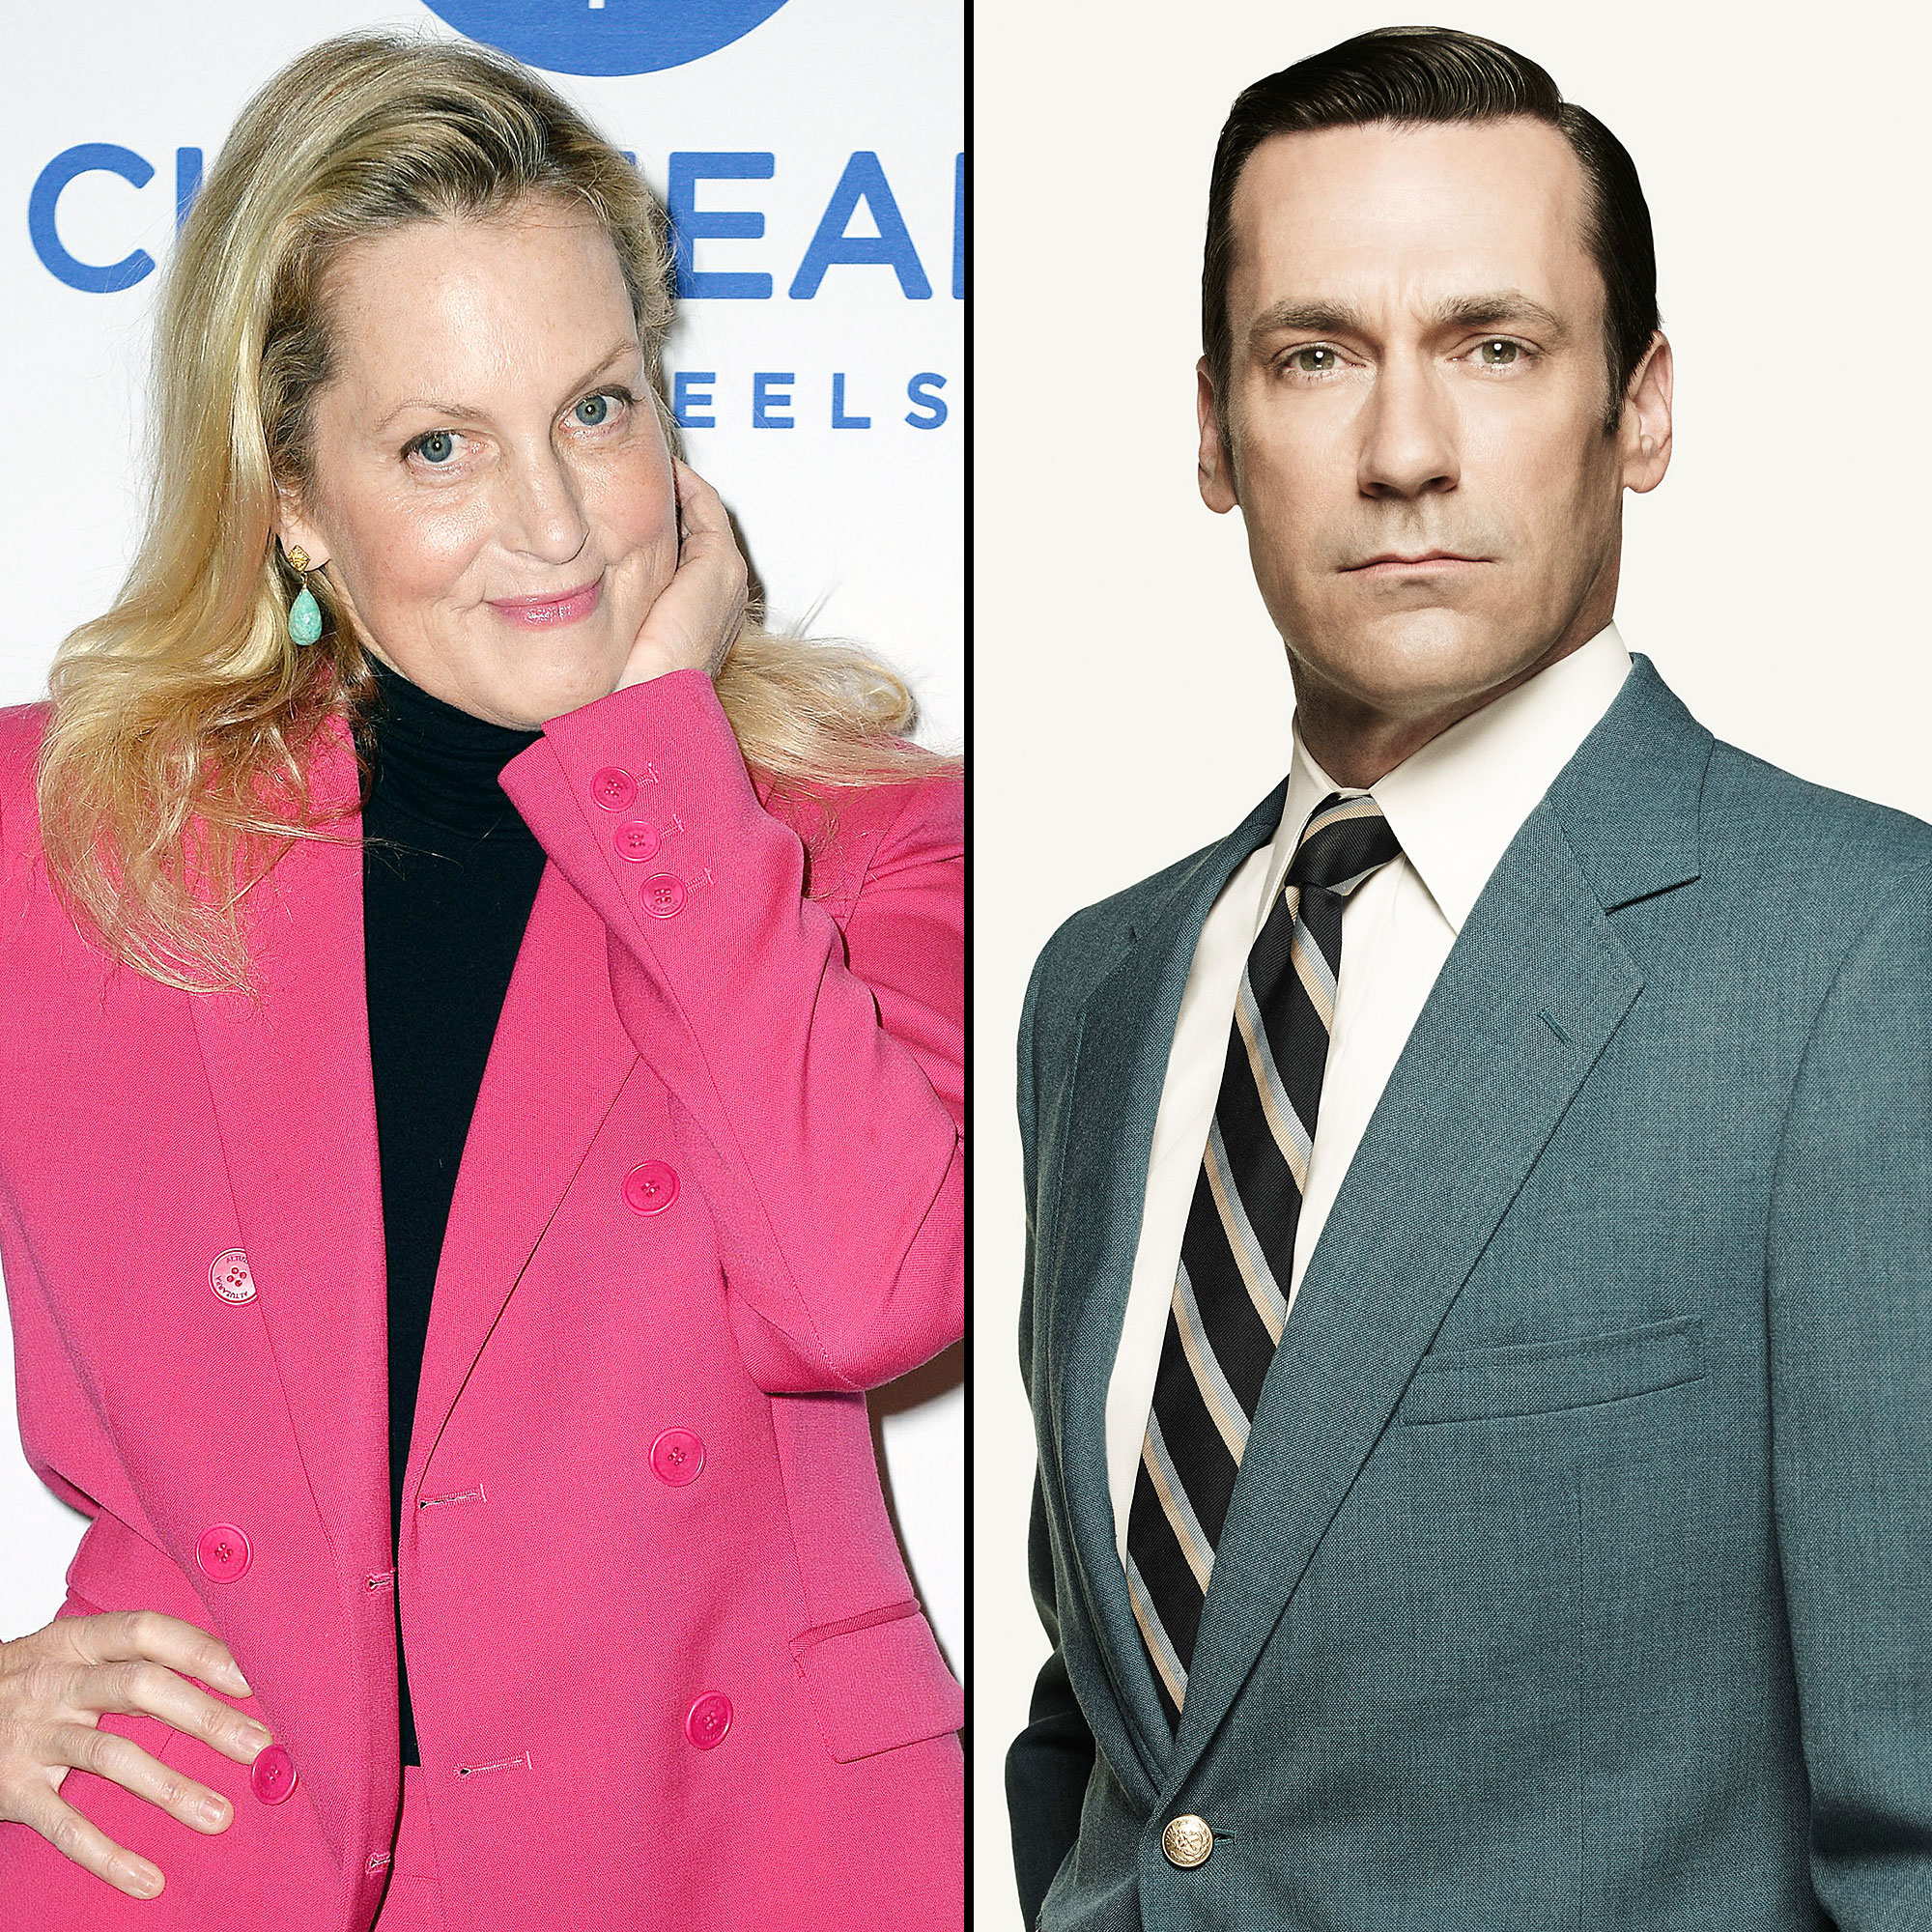 Ali Wentworth Actually Believed She Was Married to Jon Hamm After Binge-Watching Mad Men in Coronavirus Delirium